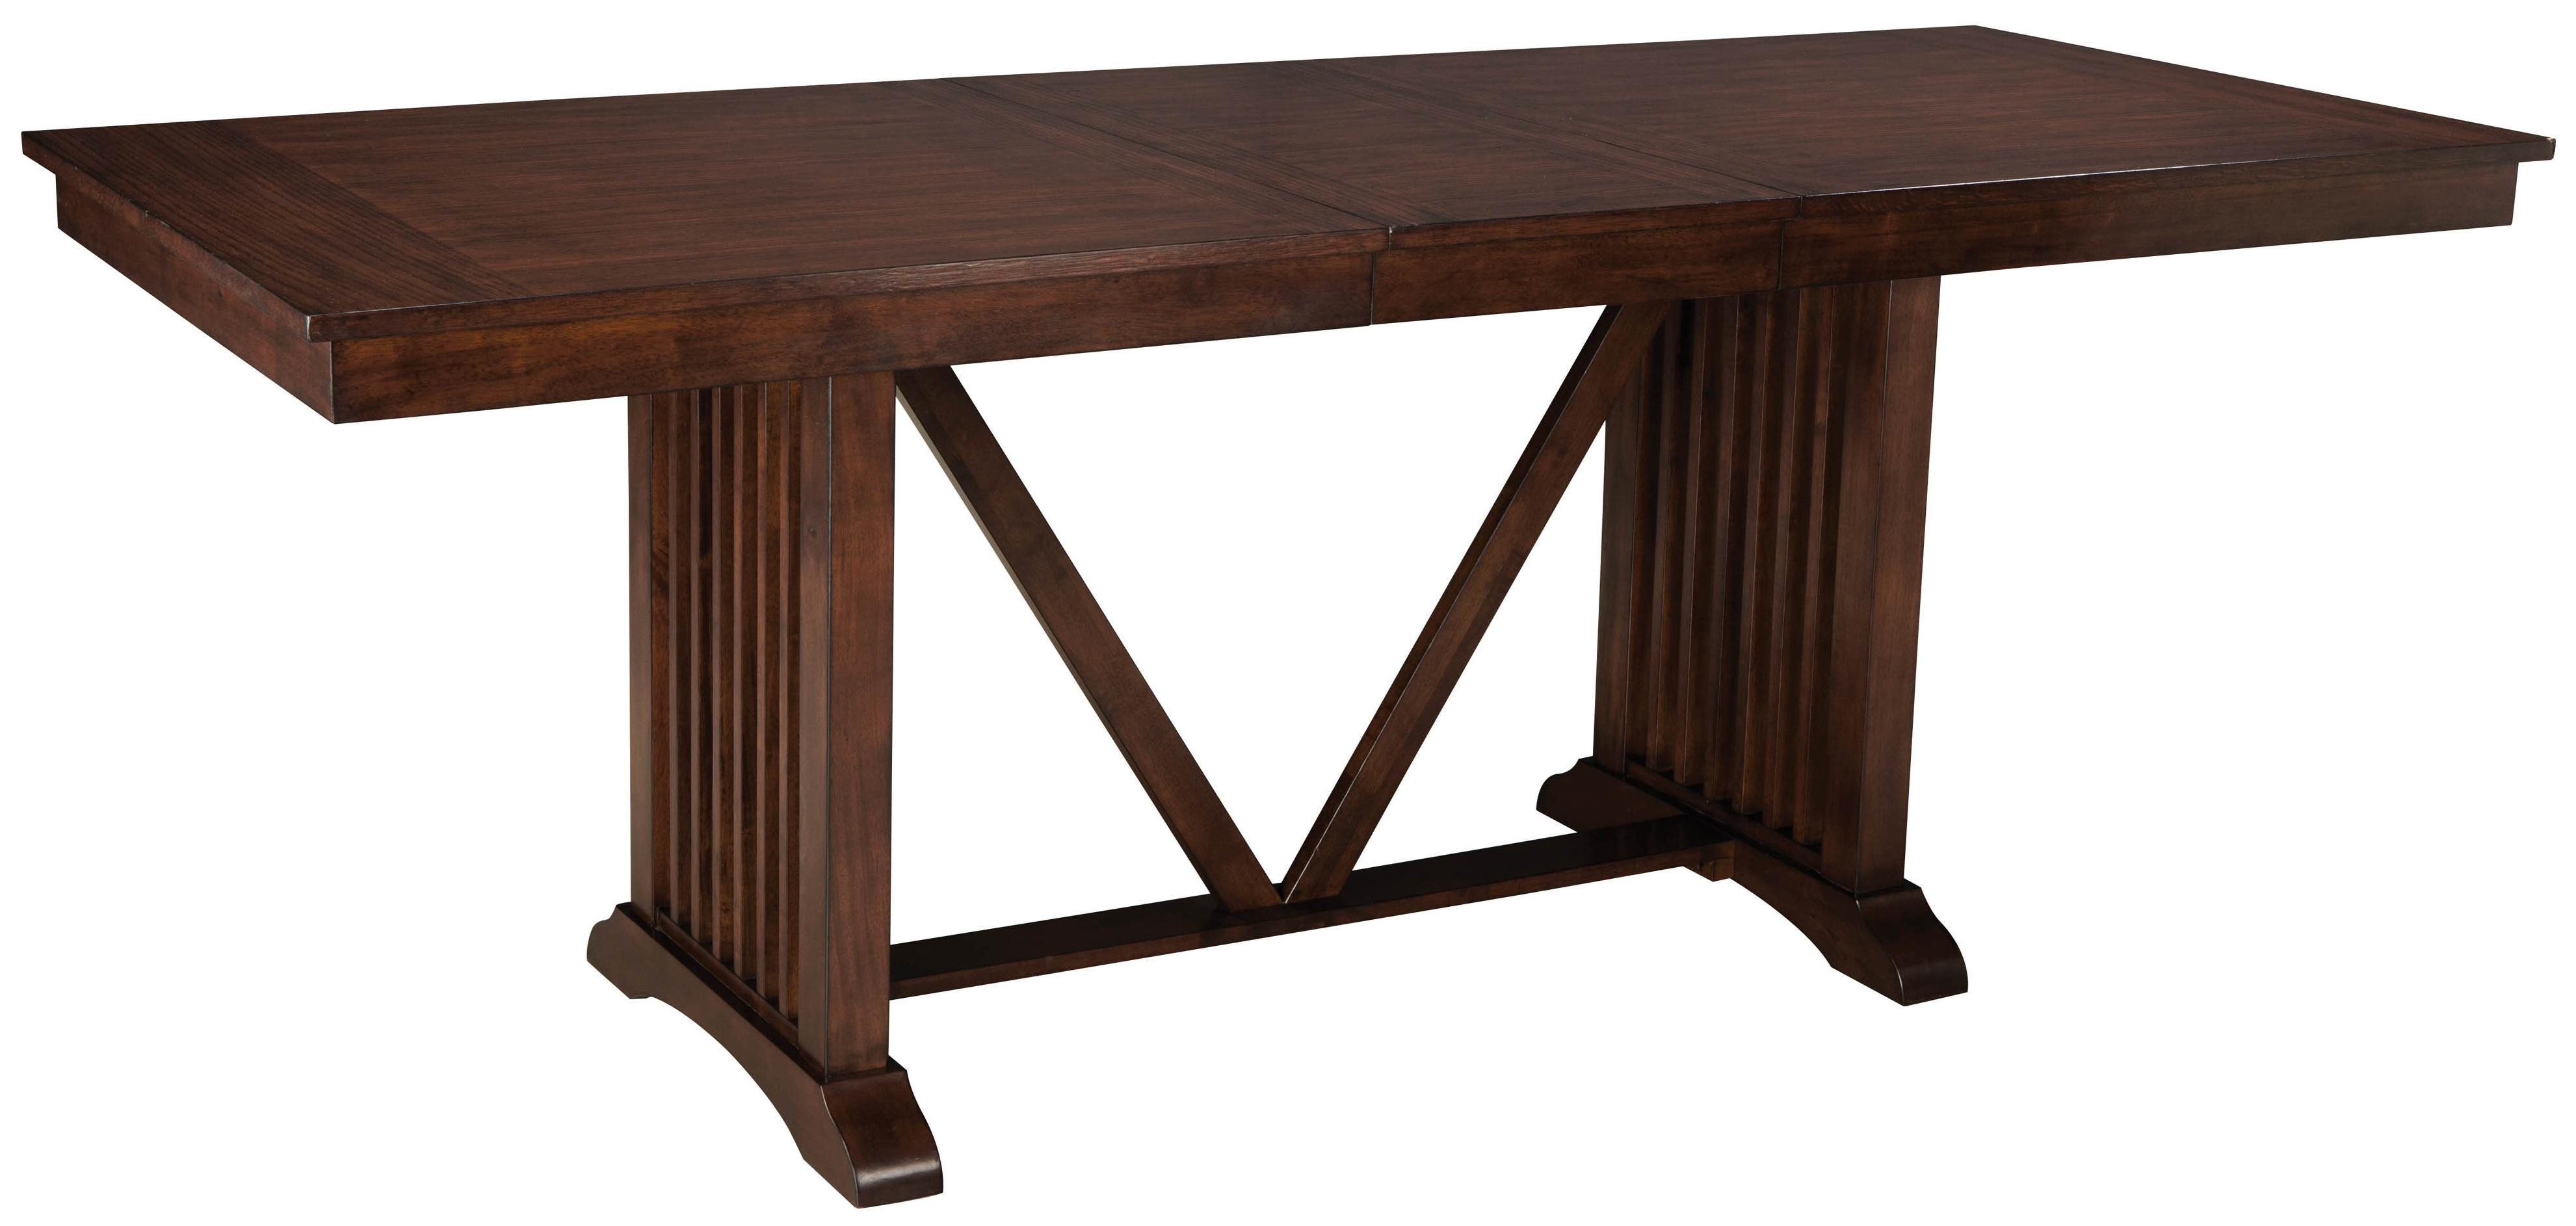 Standard Furniture Artisan Loft Counter Height Table - Item Number: 13636